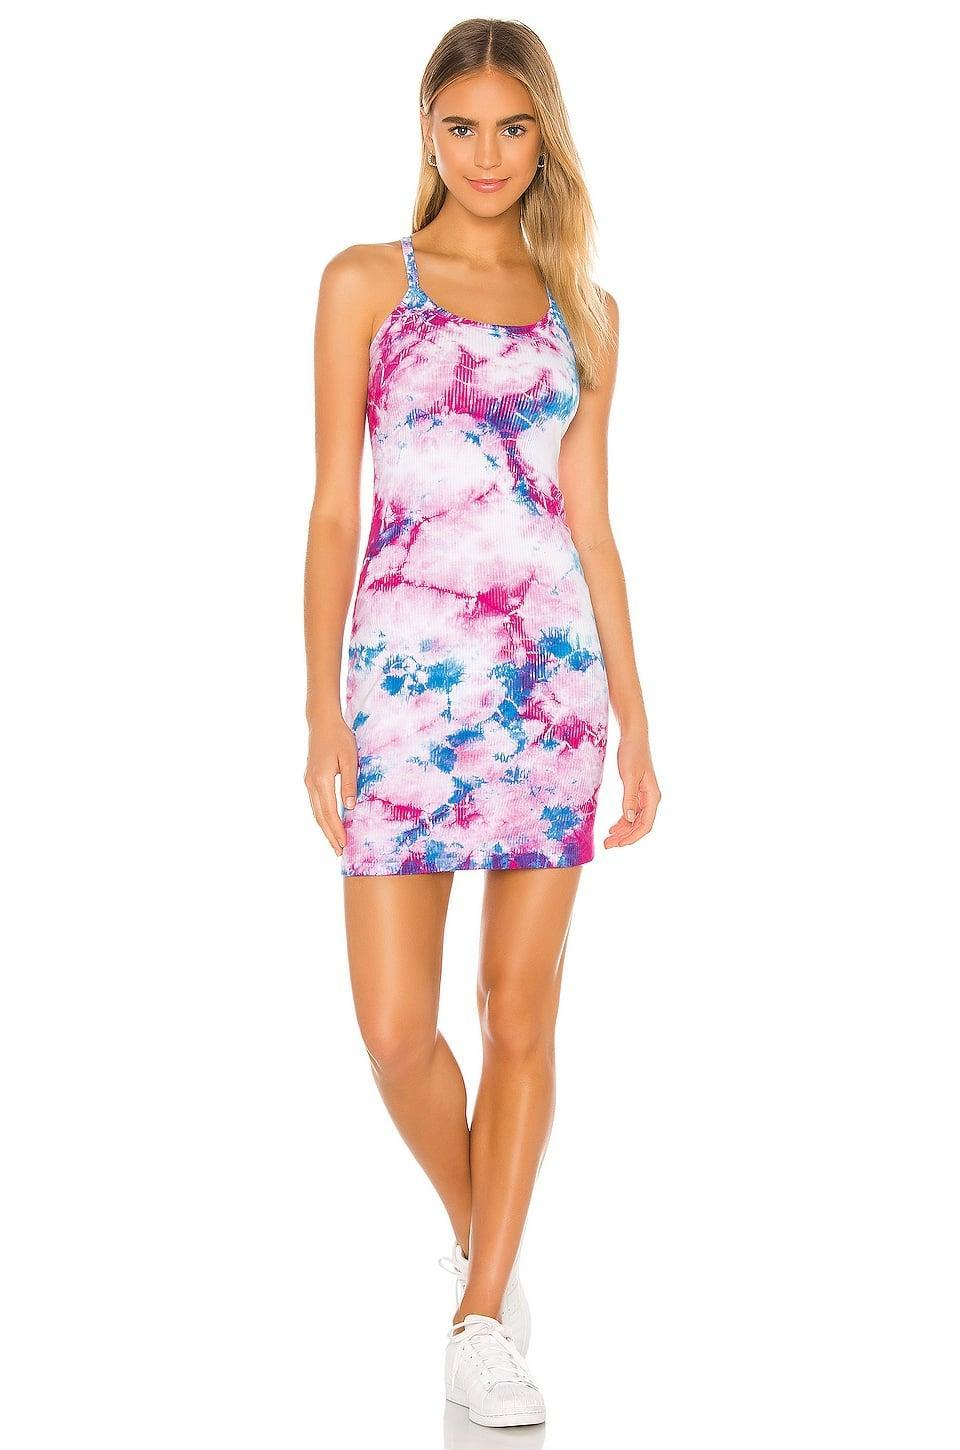 <p>We're still in love with the tie-dye trend and the <span>Year of Ours Gwyneth Rib Dress in Sky Dye</span> ($51, originally $110) is such a bright and bold find. It's a cute day dress perfect for brunch or relaxing at the park. </p>